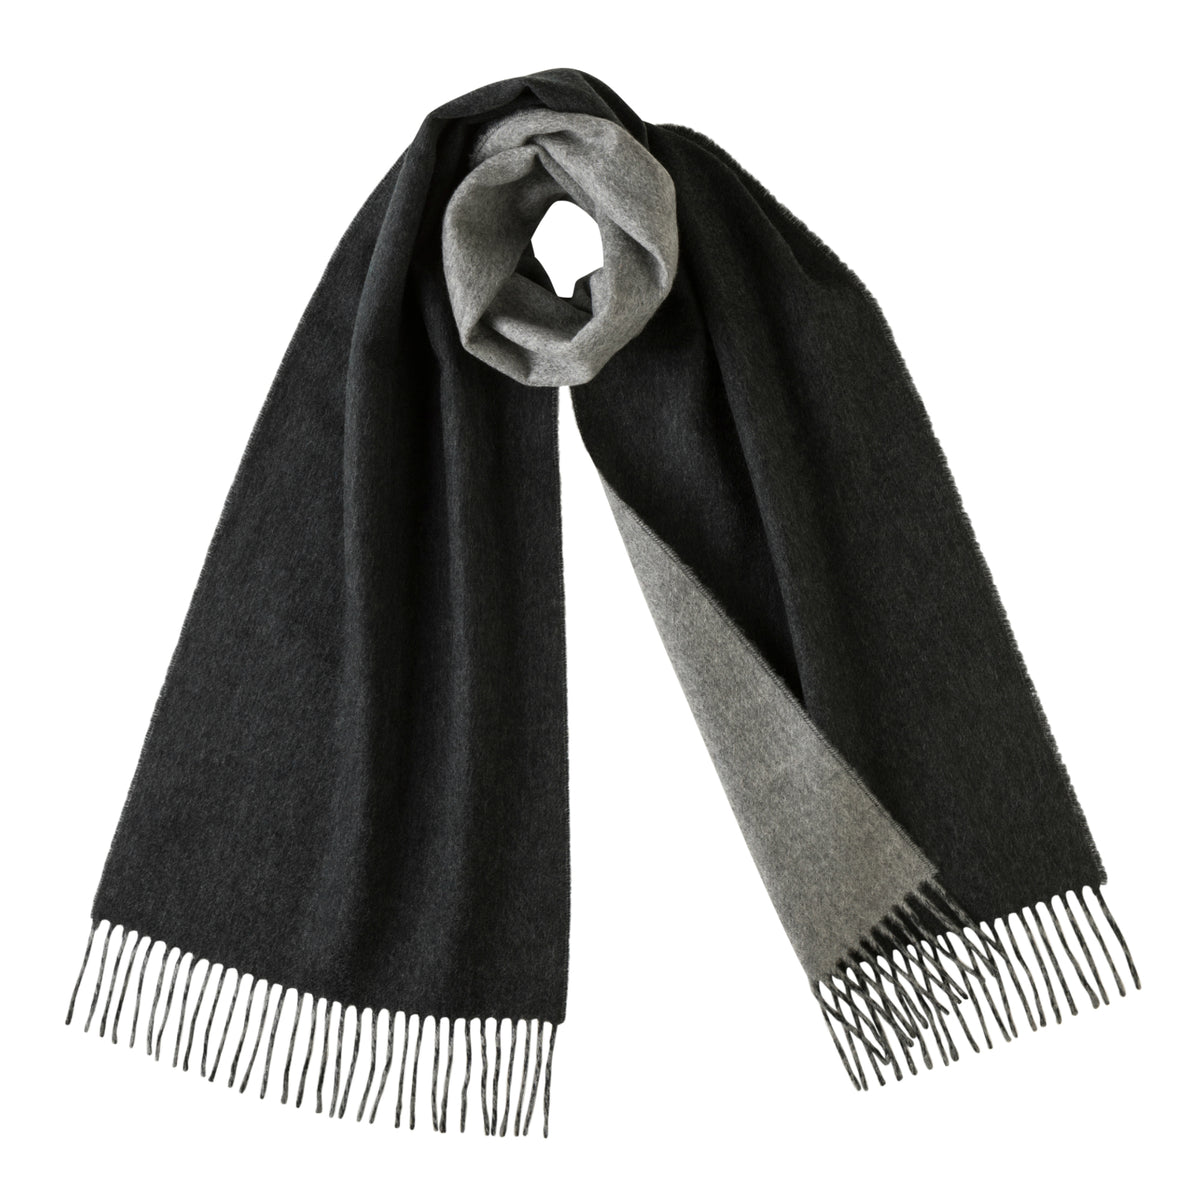 Johnsons of Elgin | Johnstons Cashmere | Charcoal Grey Reversible Cashmere Scarf | buy at The Cashmere Choice | London